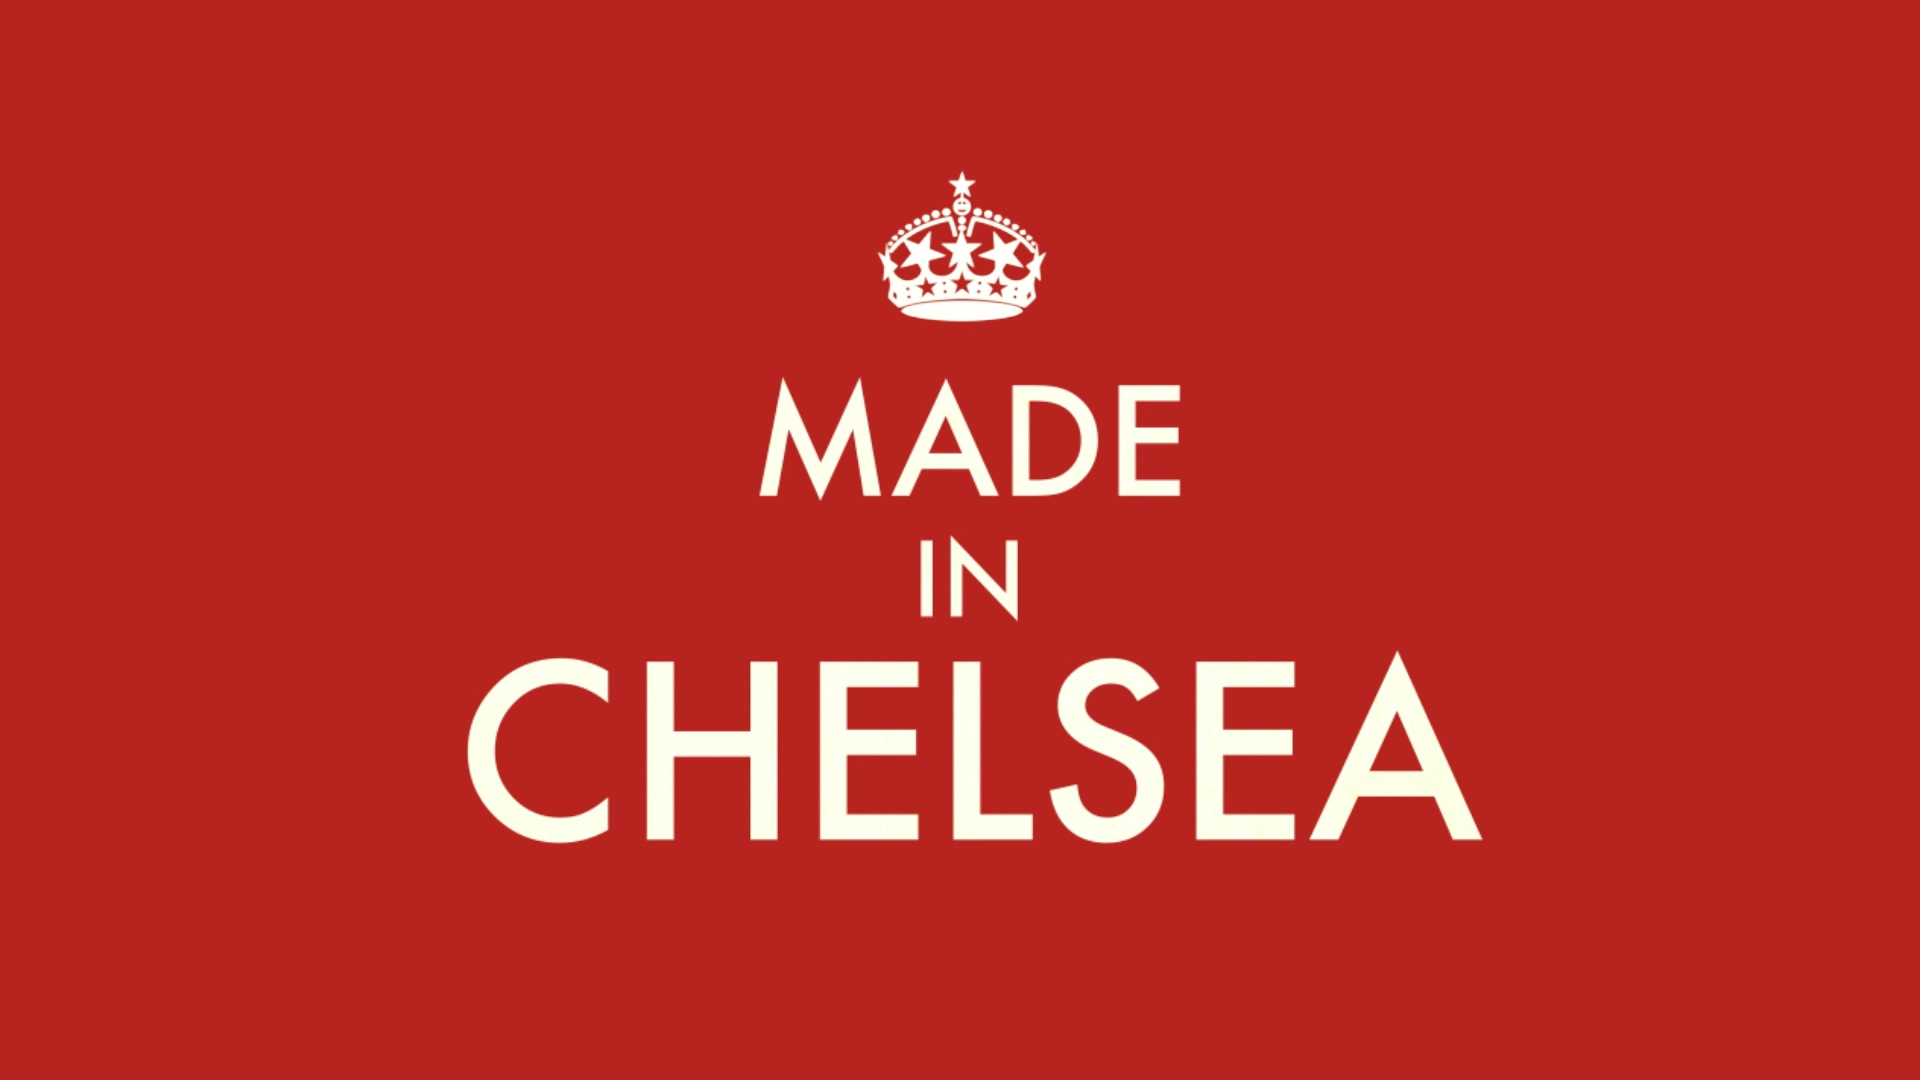 Made in Chelsea show.jpg